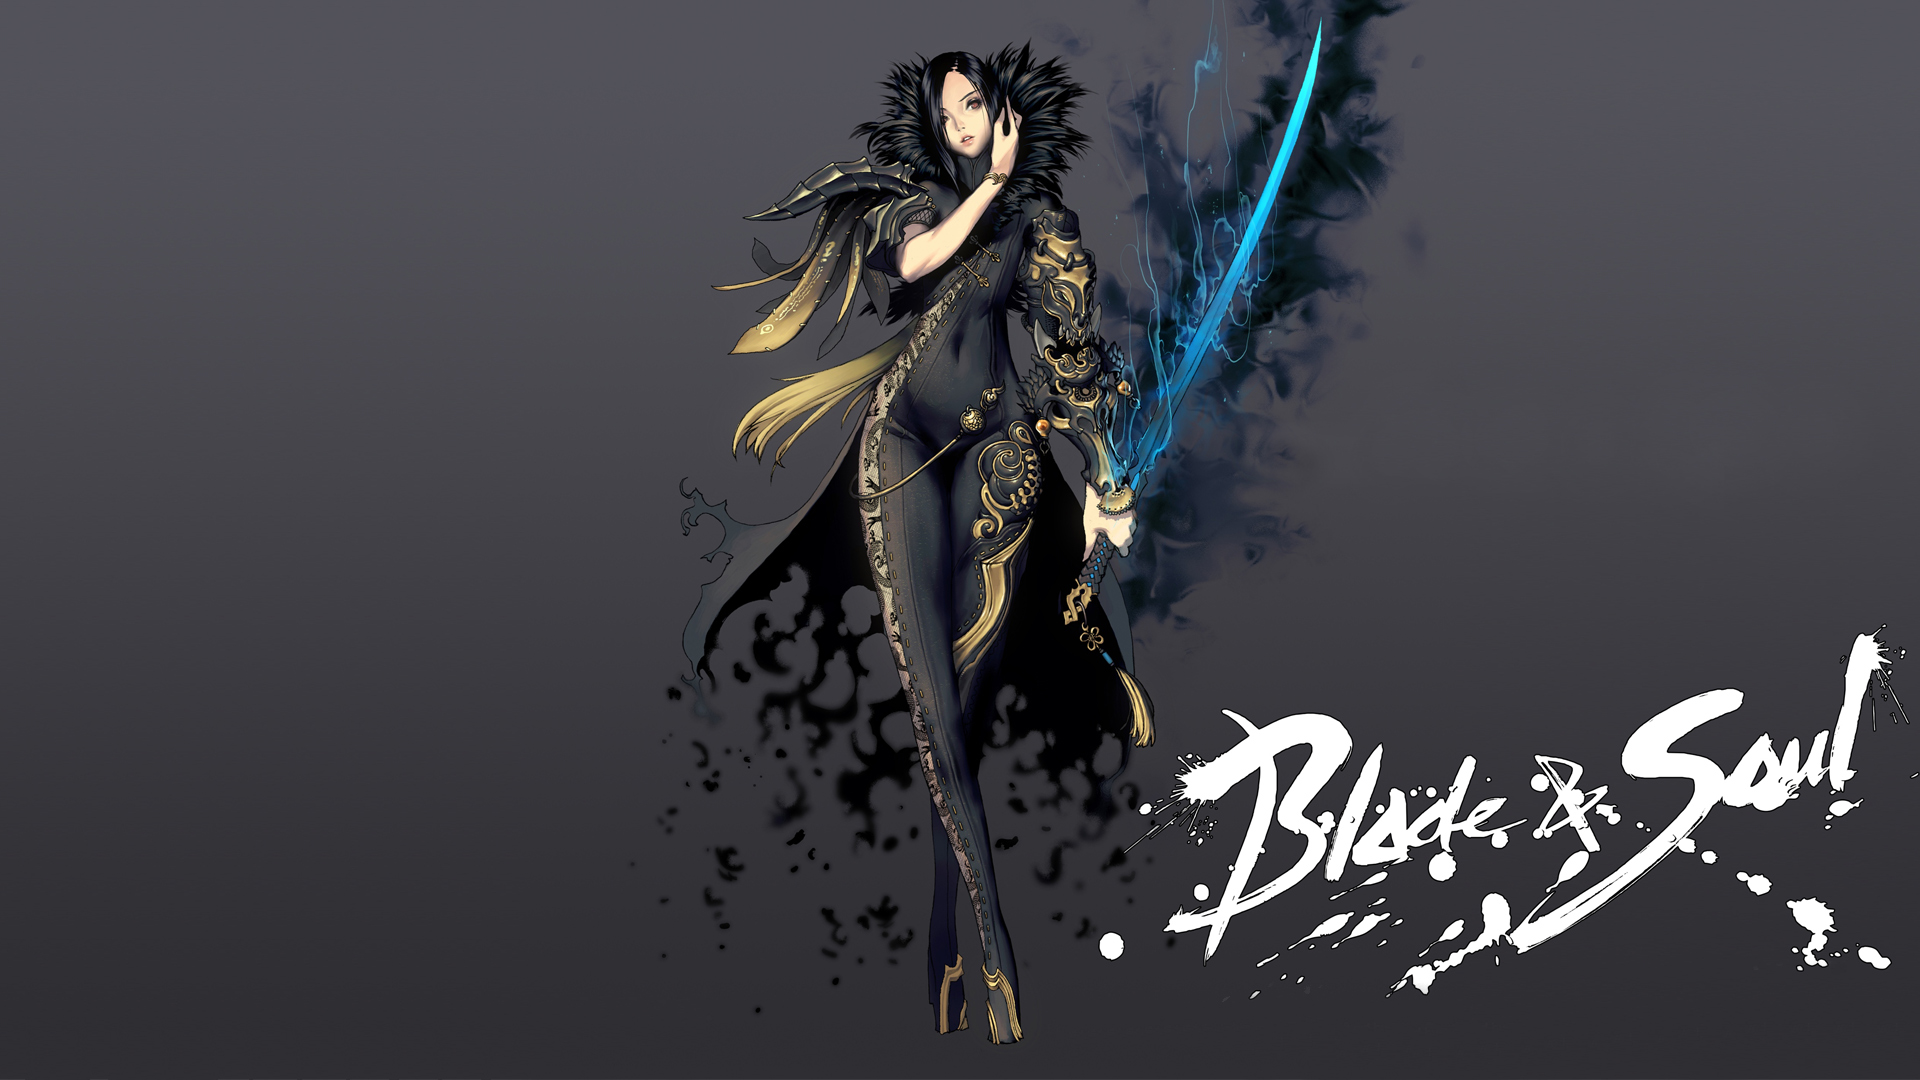 jin anime girl blade and soul spring 2014 1920x1080 1080p wallpaper 1920x1080